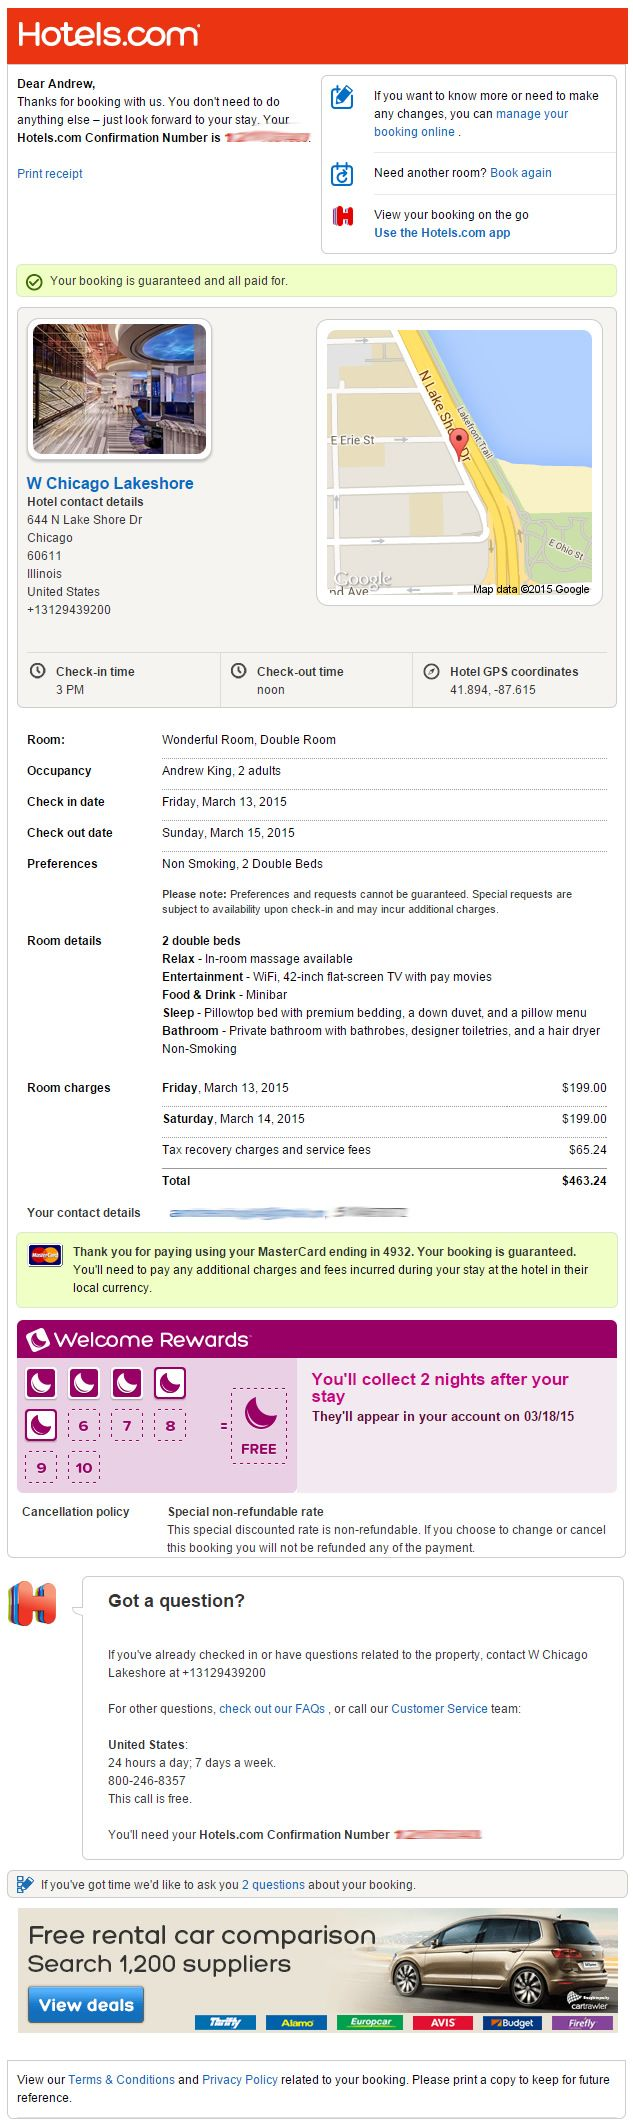 Confirmation email from Hotels.com